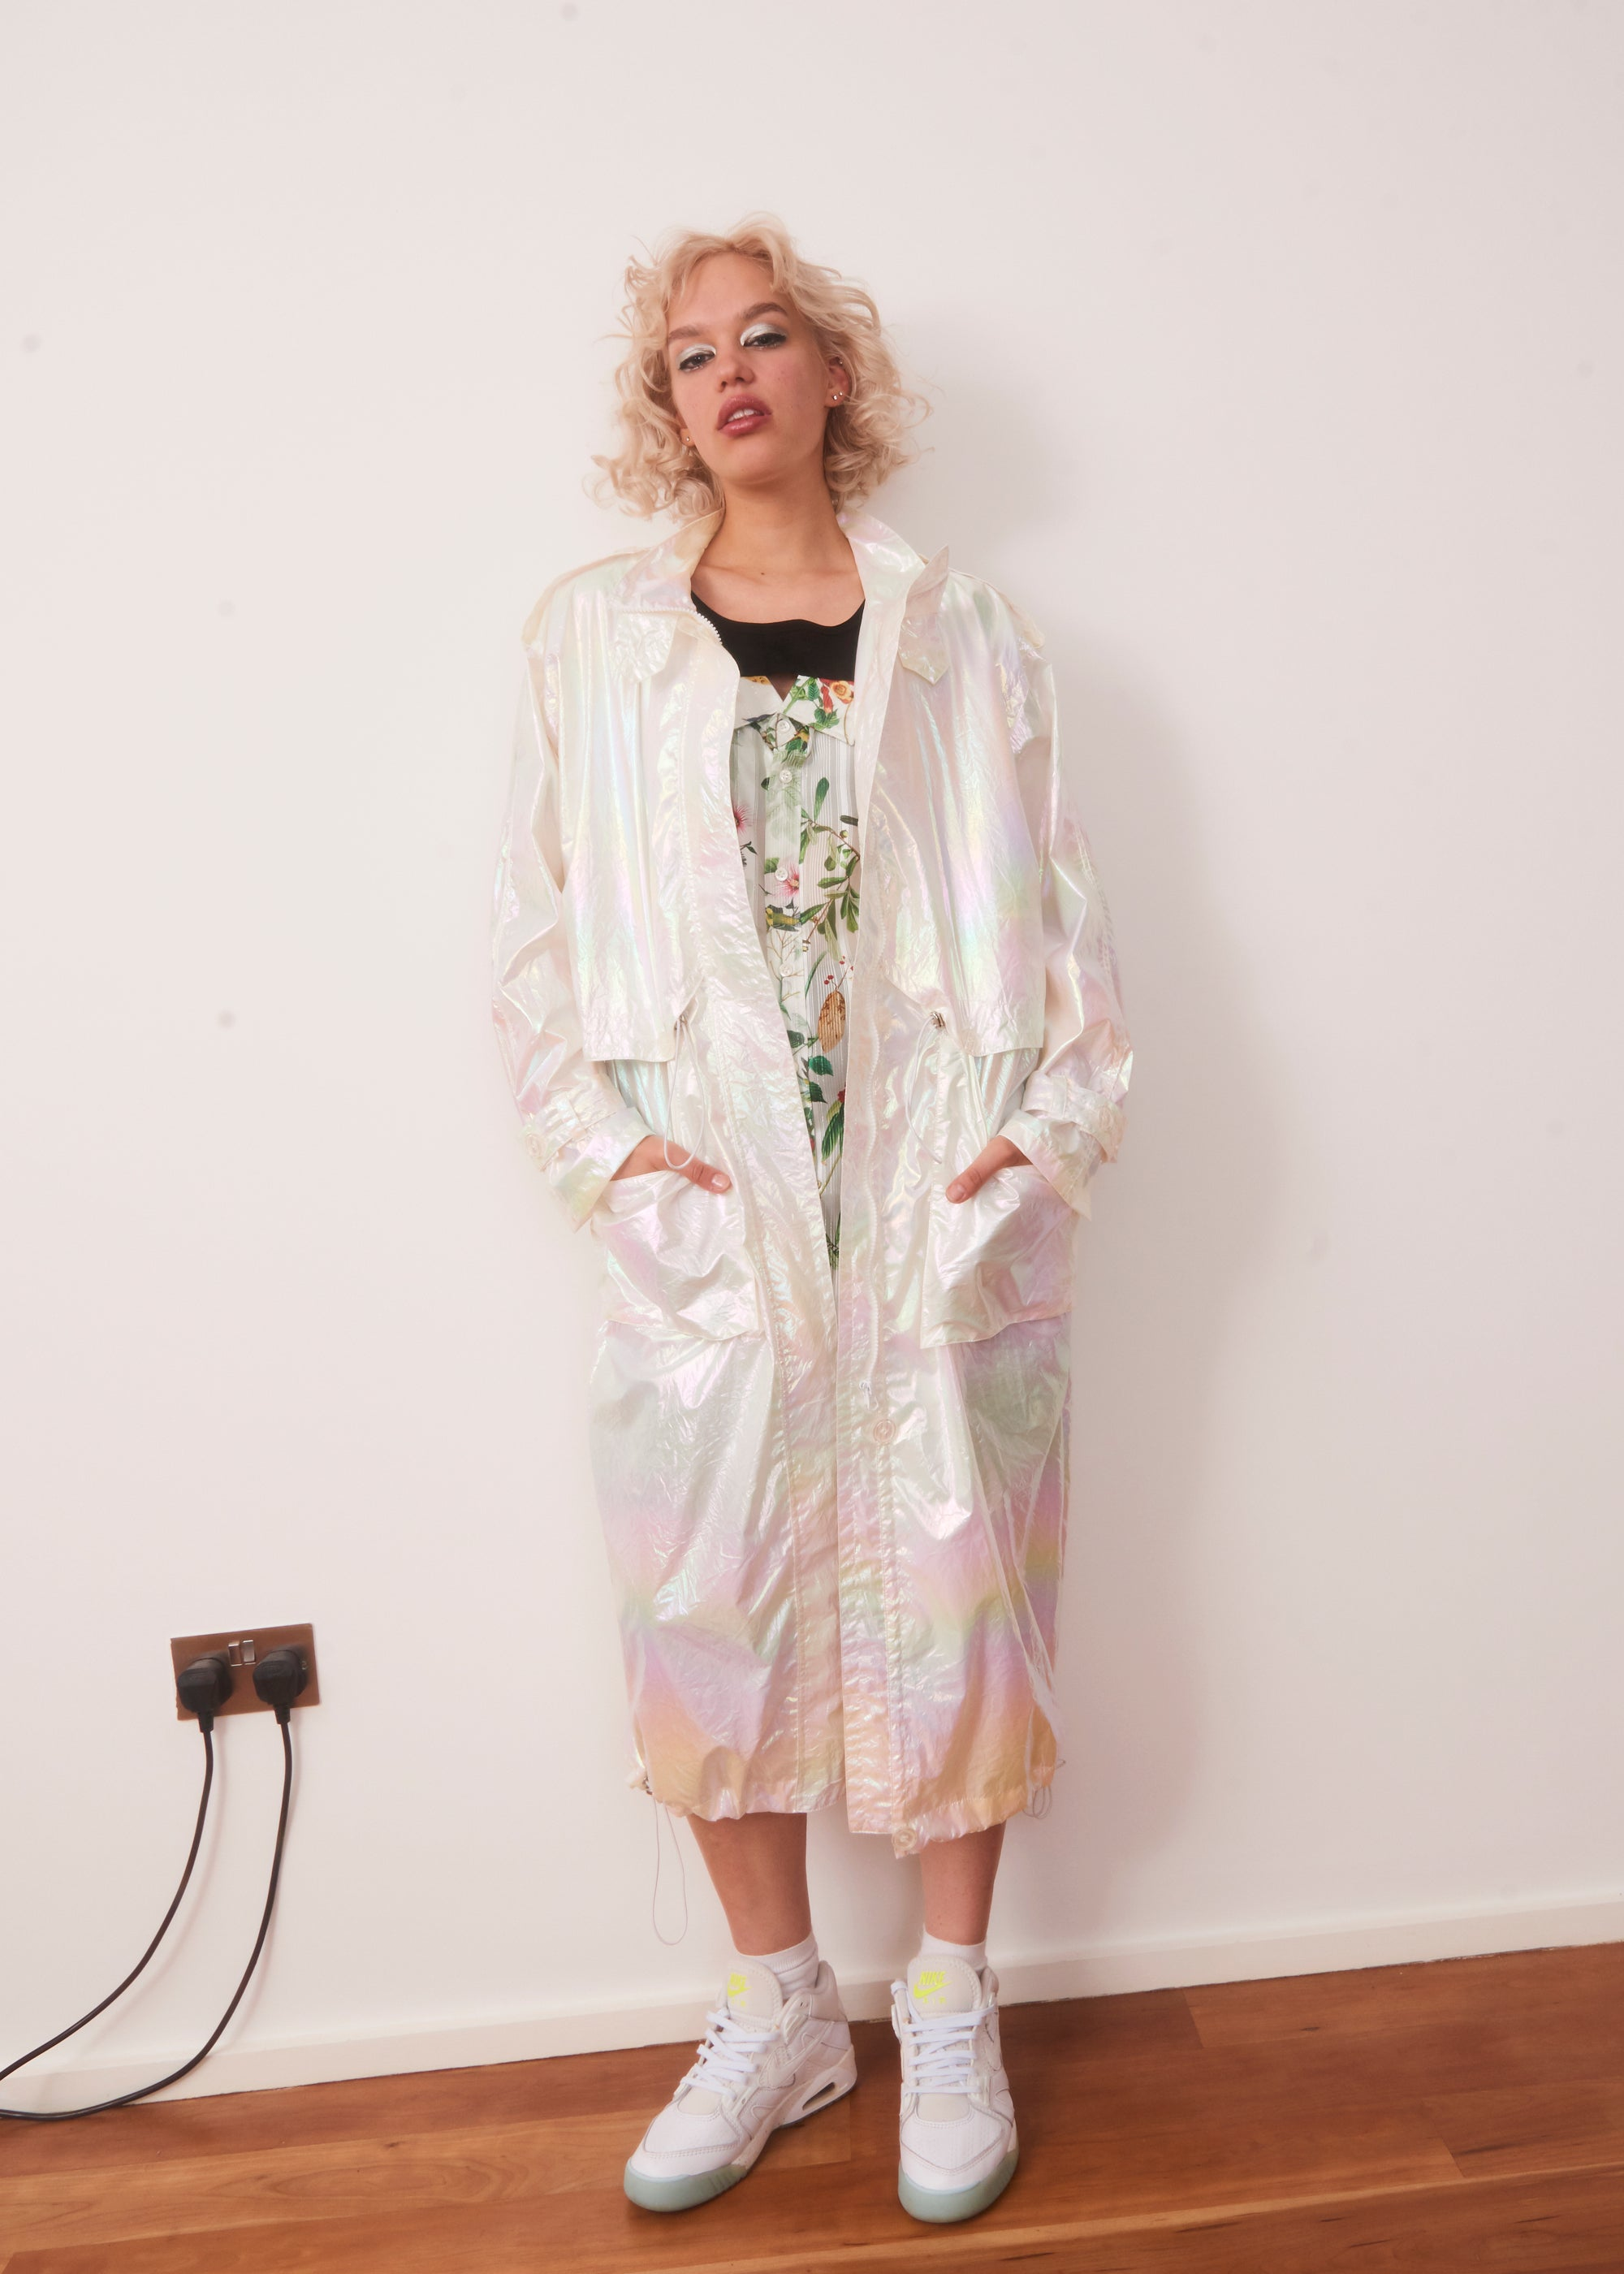 Vinti Andrews Pearlescent 90s Summer Coat